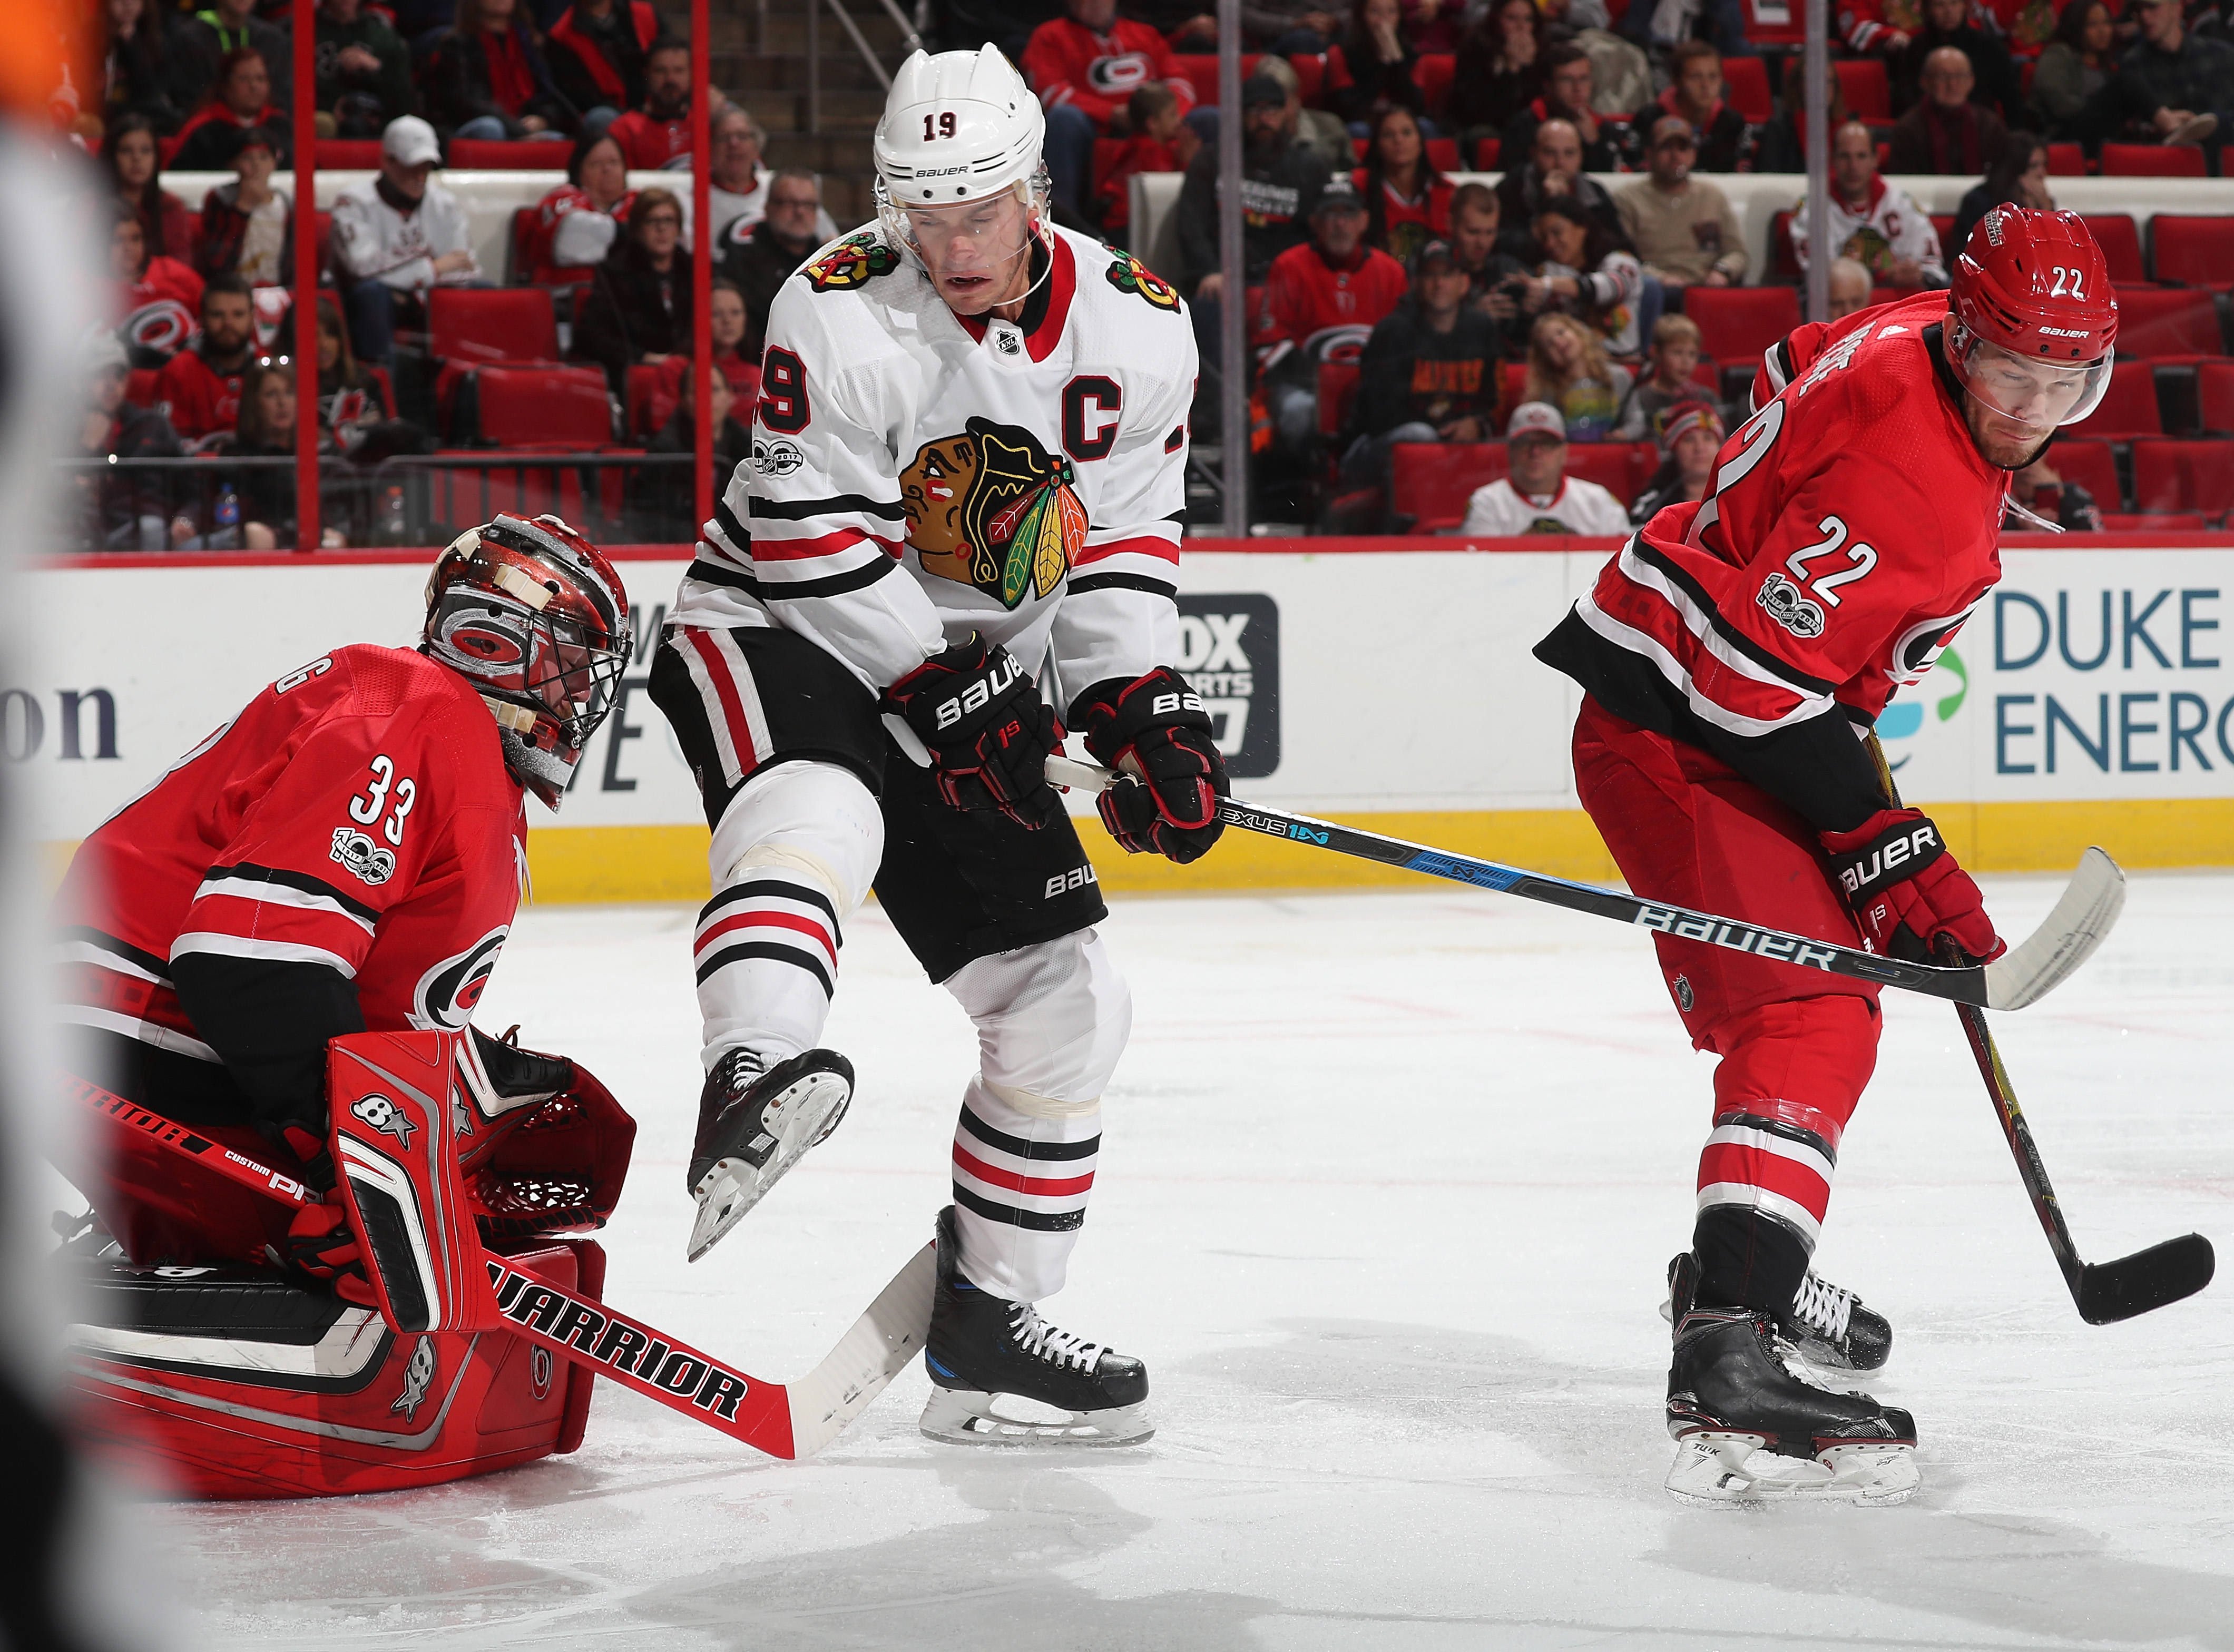 Blackhawks trail Hurricanes 2-0 after first period